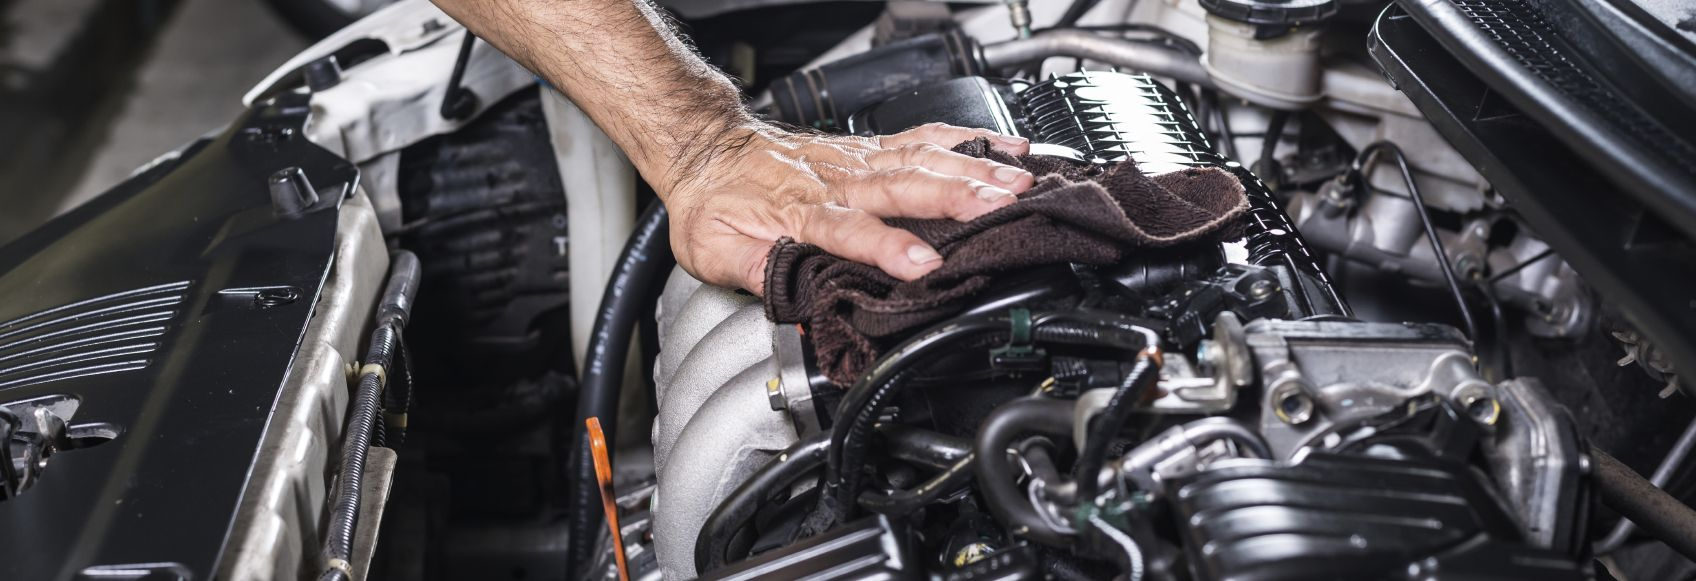 Transmission Fluid Replacement Service near Dallas, TX